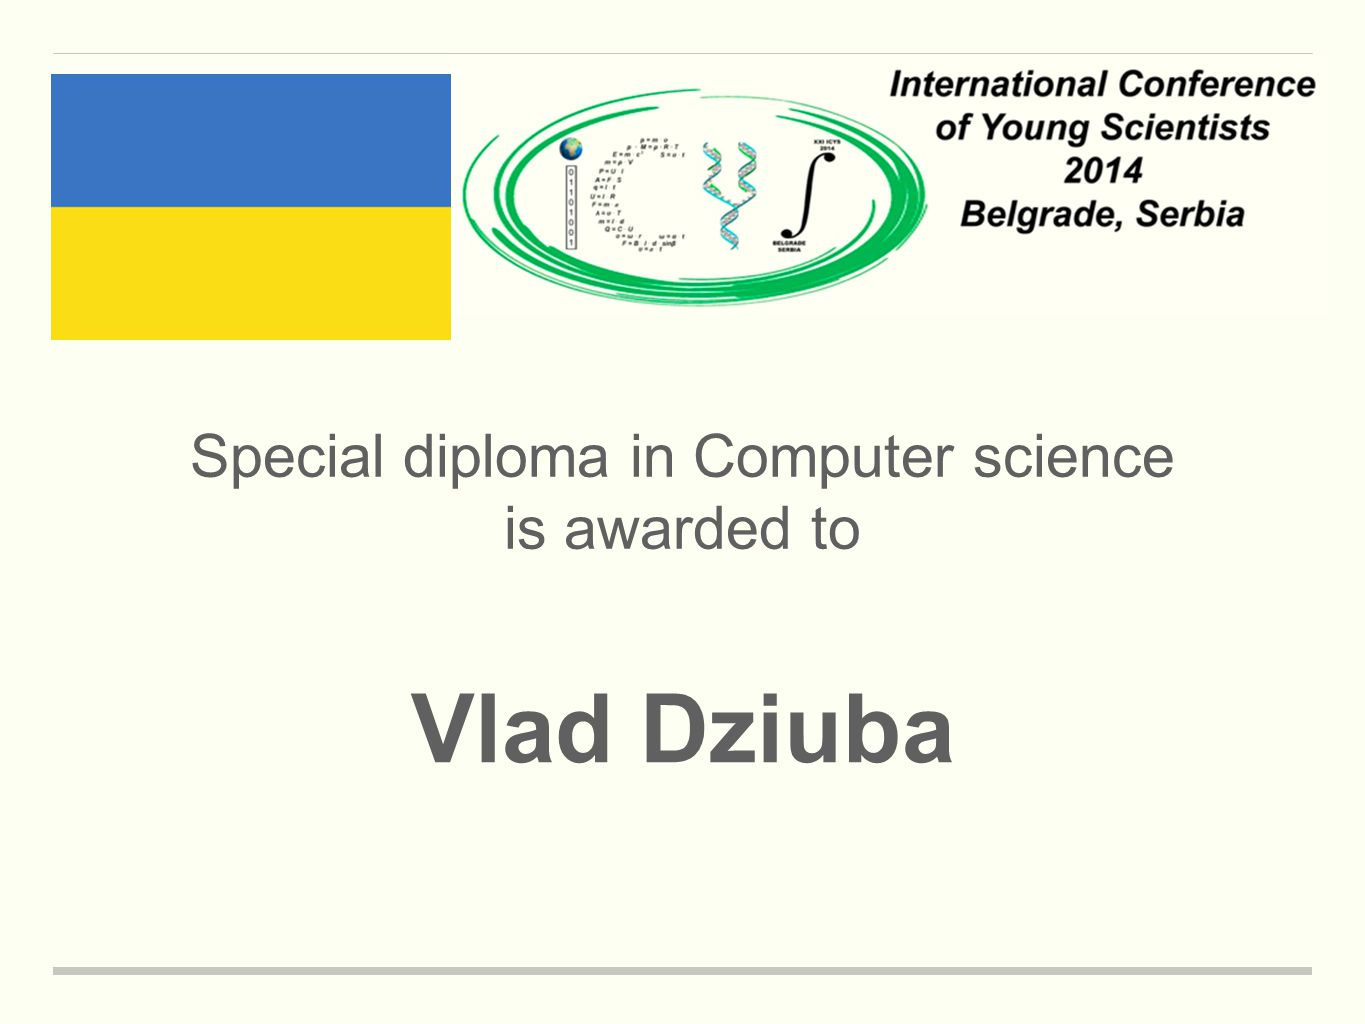 Special diploma in Computer science is awarded to Vlad Dziuba